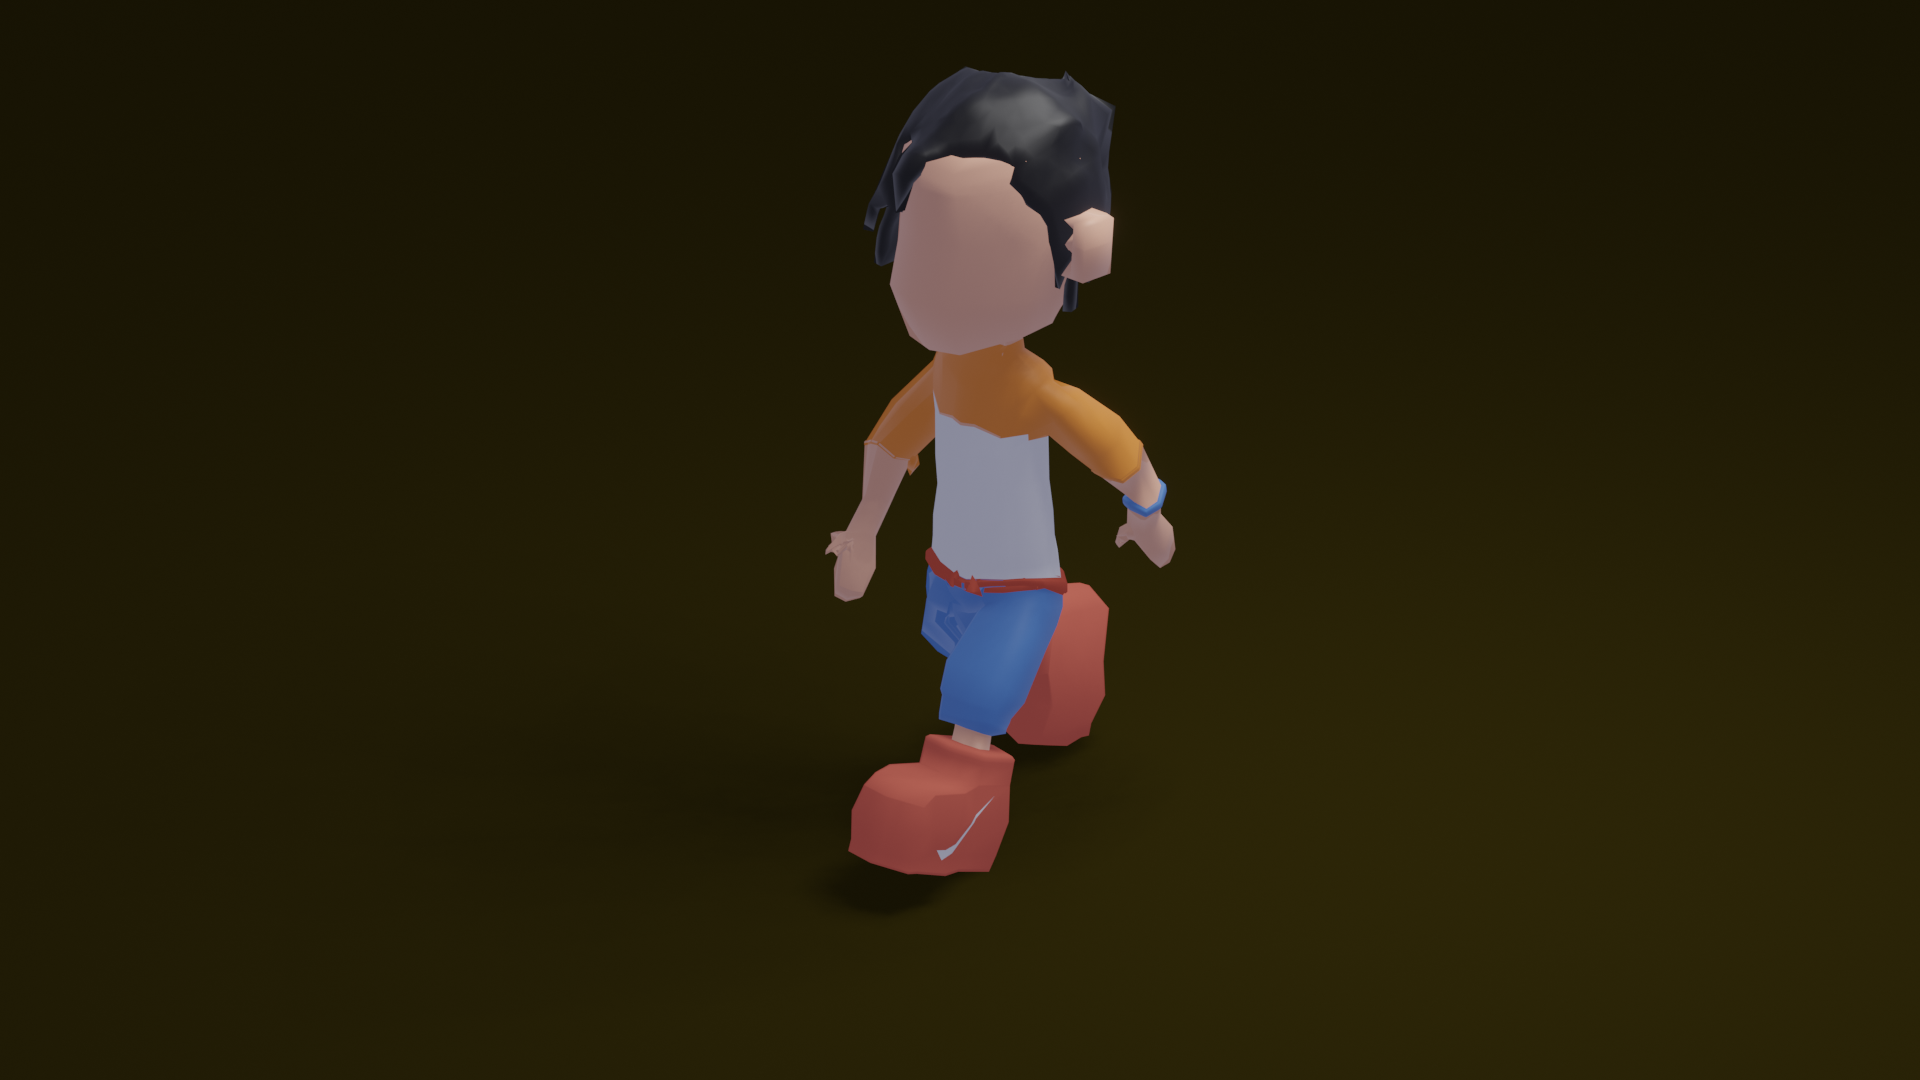 free model lowpoly guy big shoes (rigged) preview image 2